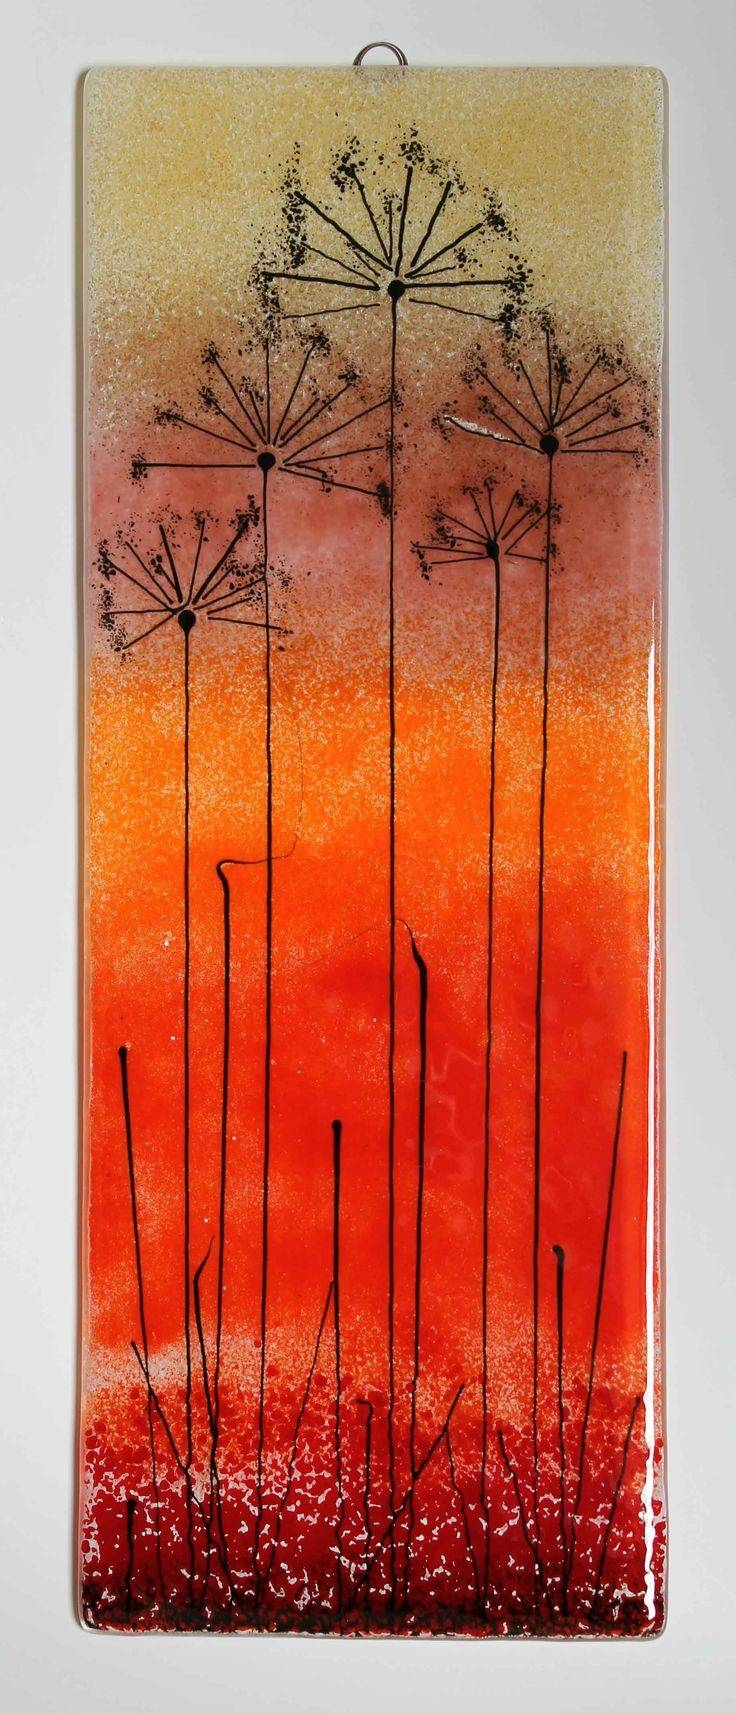 1915 Best Fused Glass – Artsy Fartsy Images On Pinterest | Artsy Inside Most Recent Fused Glass Wall Art Panels (View 1 of 25)